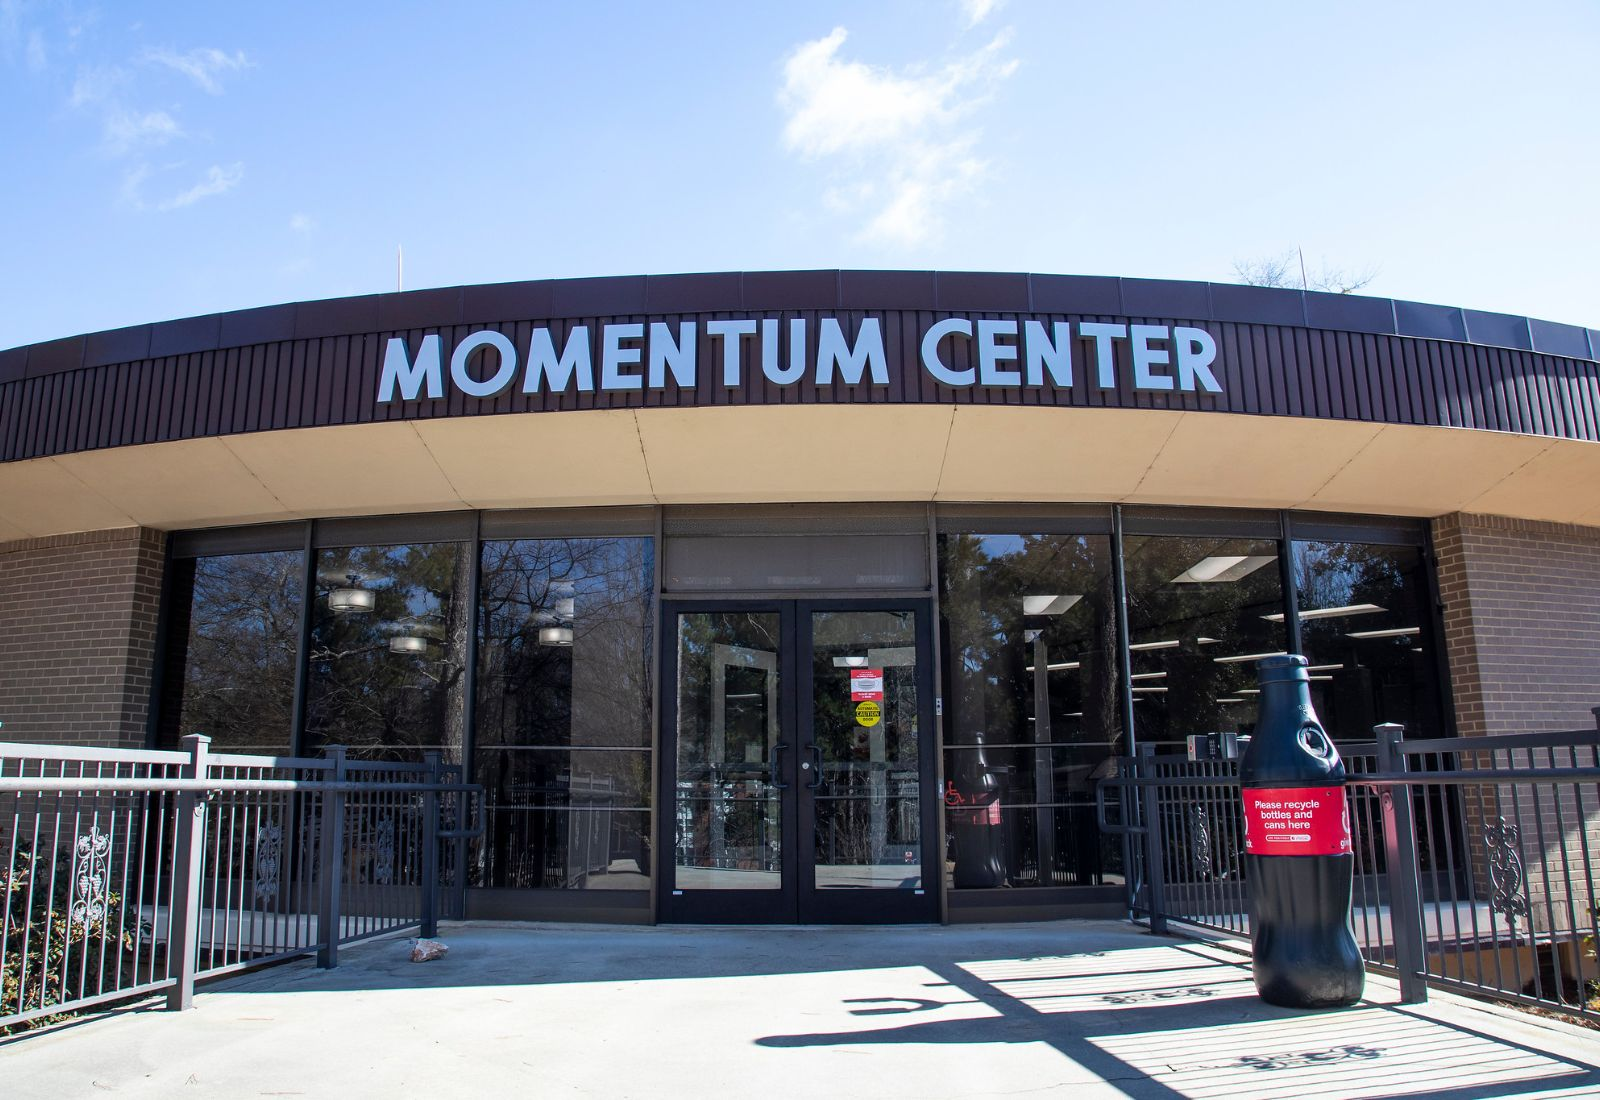 Momentum center building